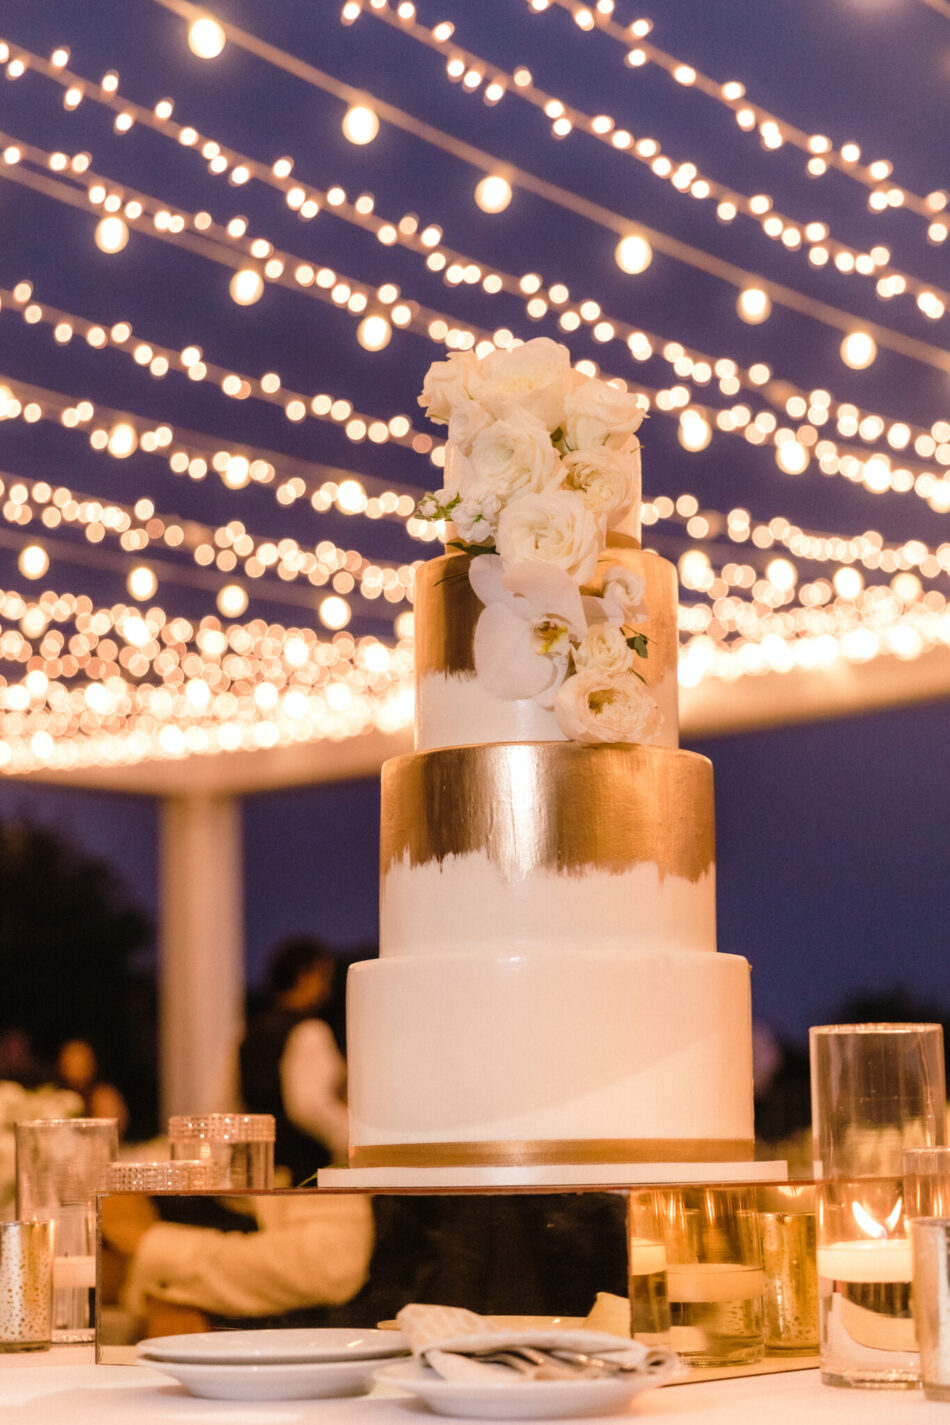 wedding cake, gold and white cake. beautiful floral-filled wedding, floral design, florist, wedding florist, wedding flowers, orange county weddings, orange county wedding florist, orange county florist, orange county floral design, flowers by cina